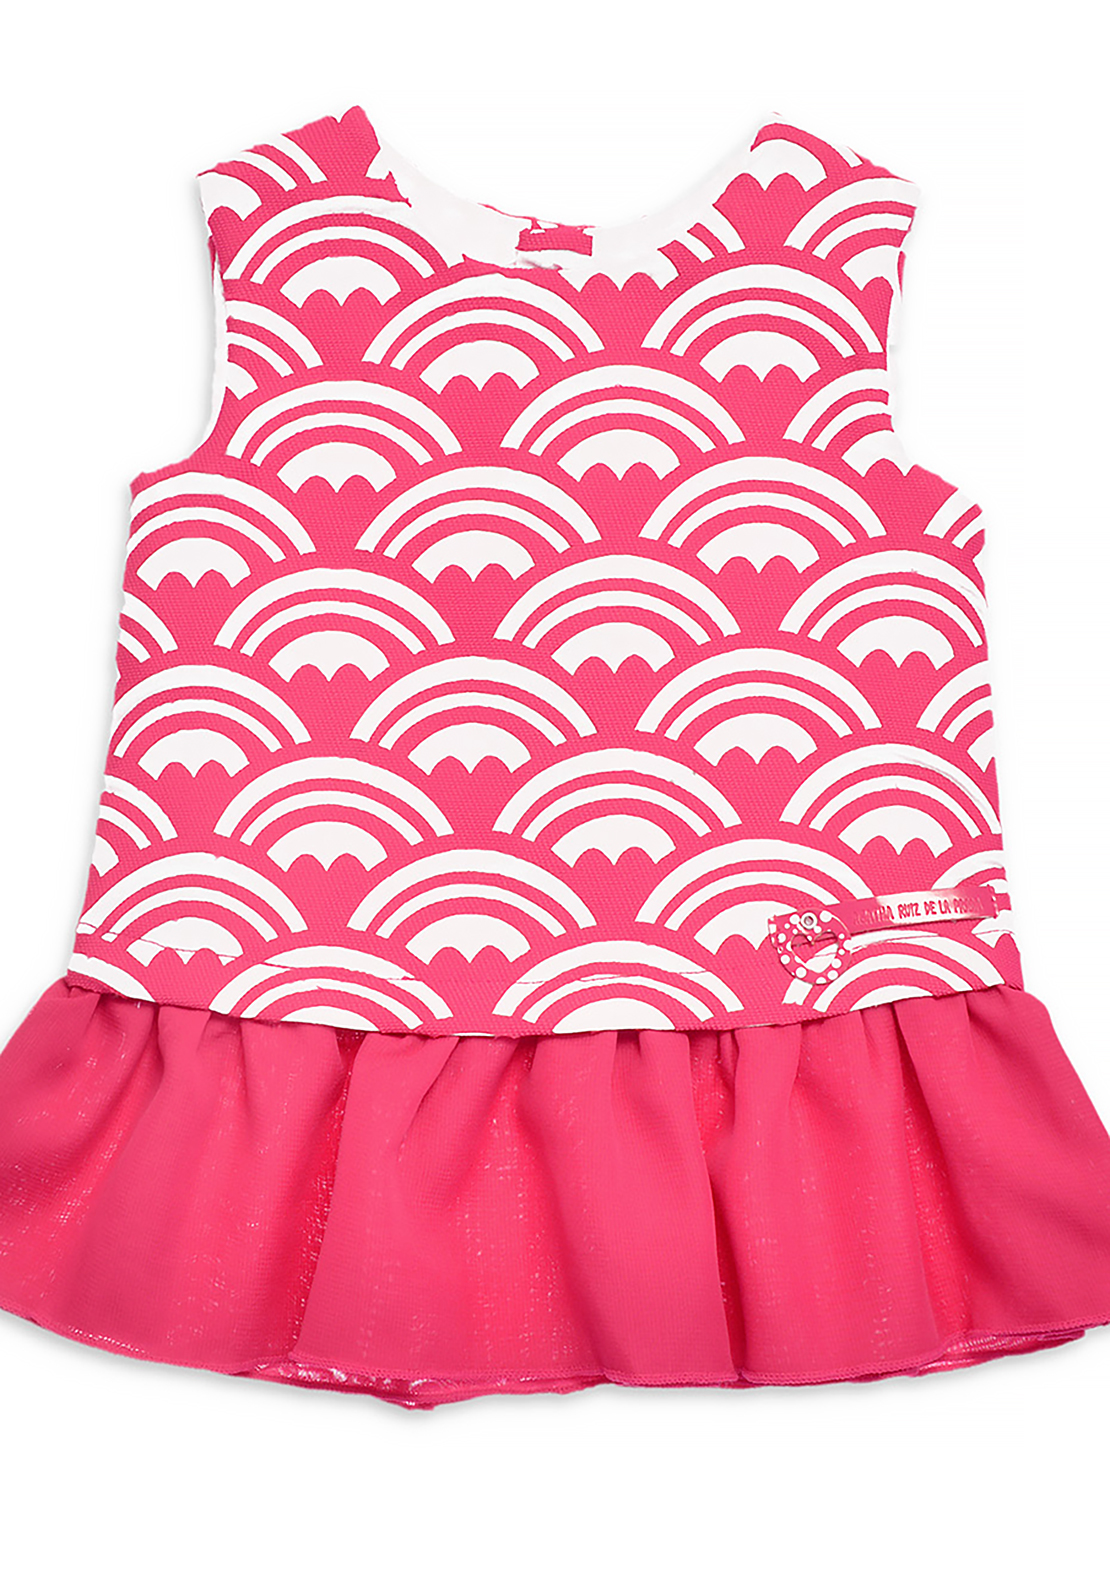 Agatha Ruiz De La Prada Rainbow Heart Dress, Pink